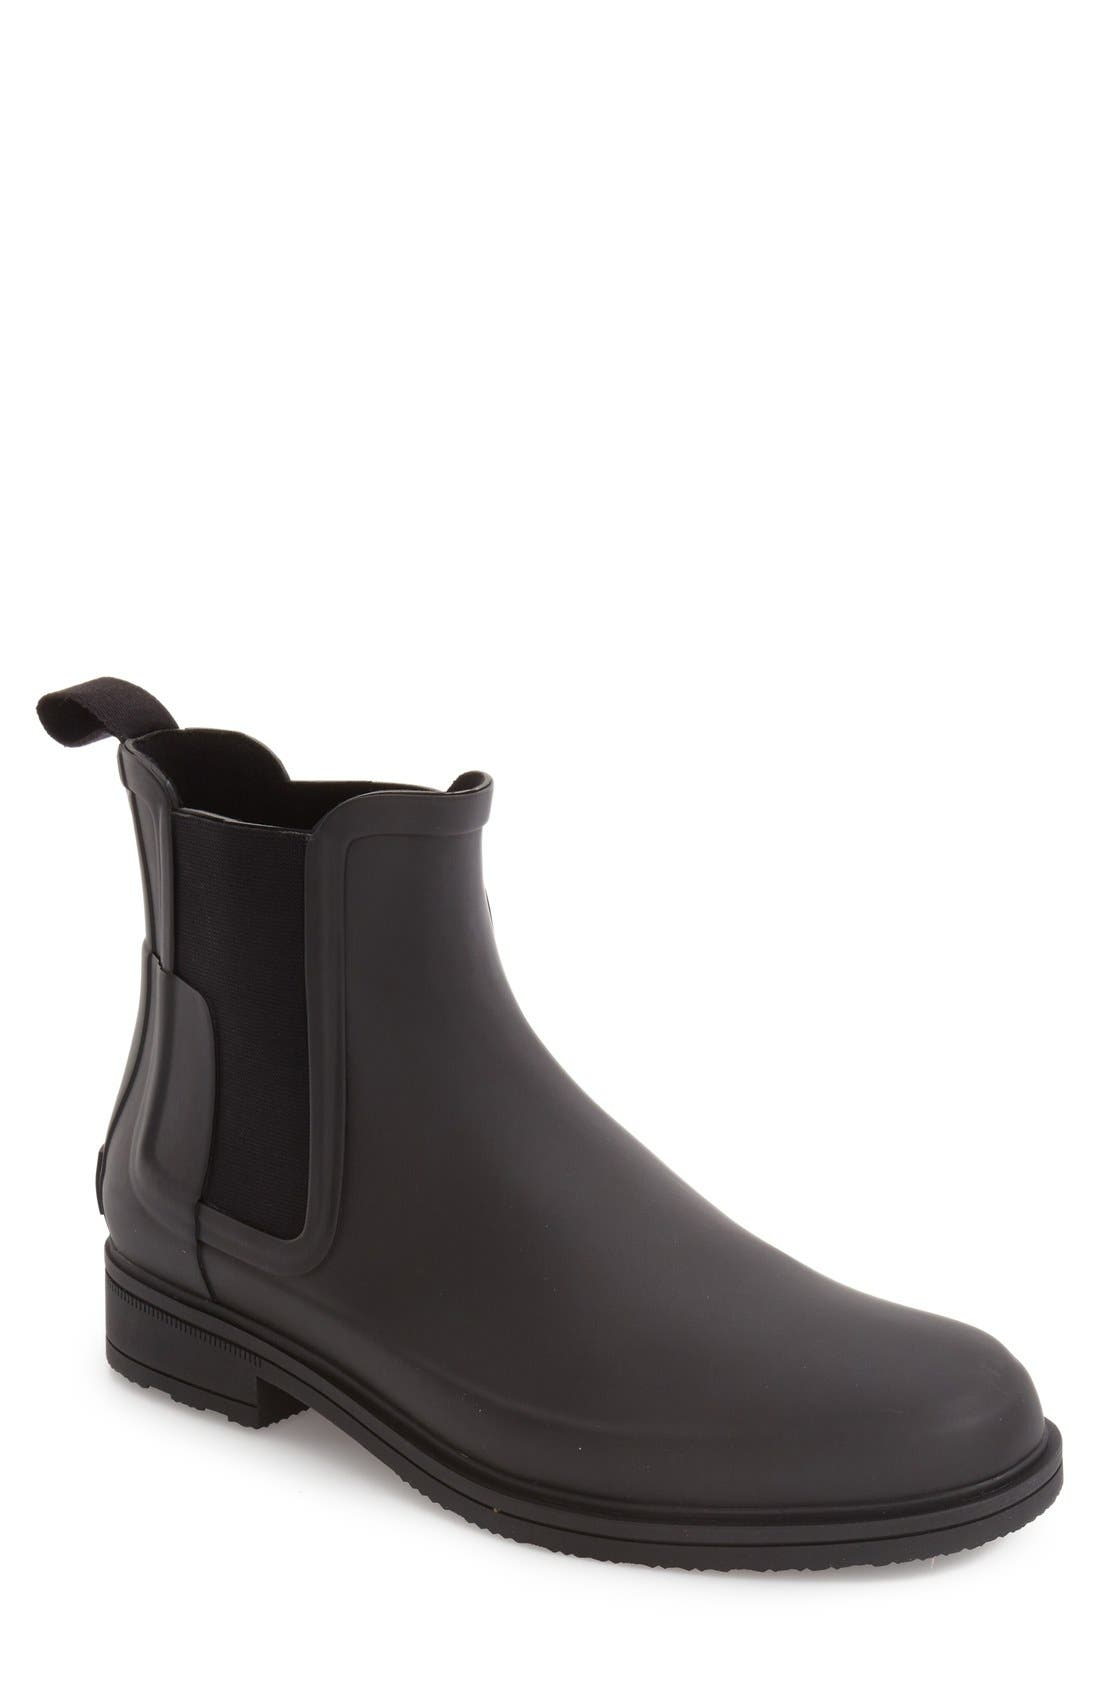 Timberland Men's Chelsea Boots for sale | eBay